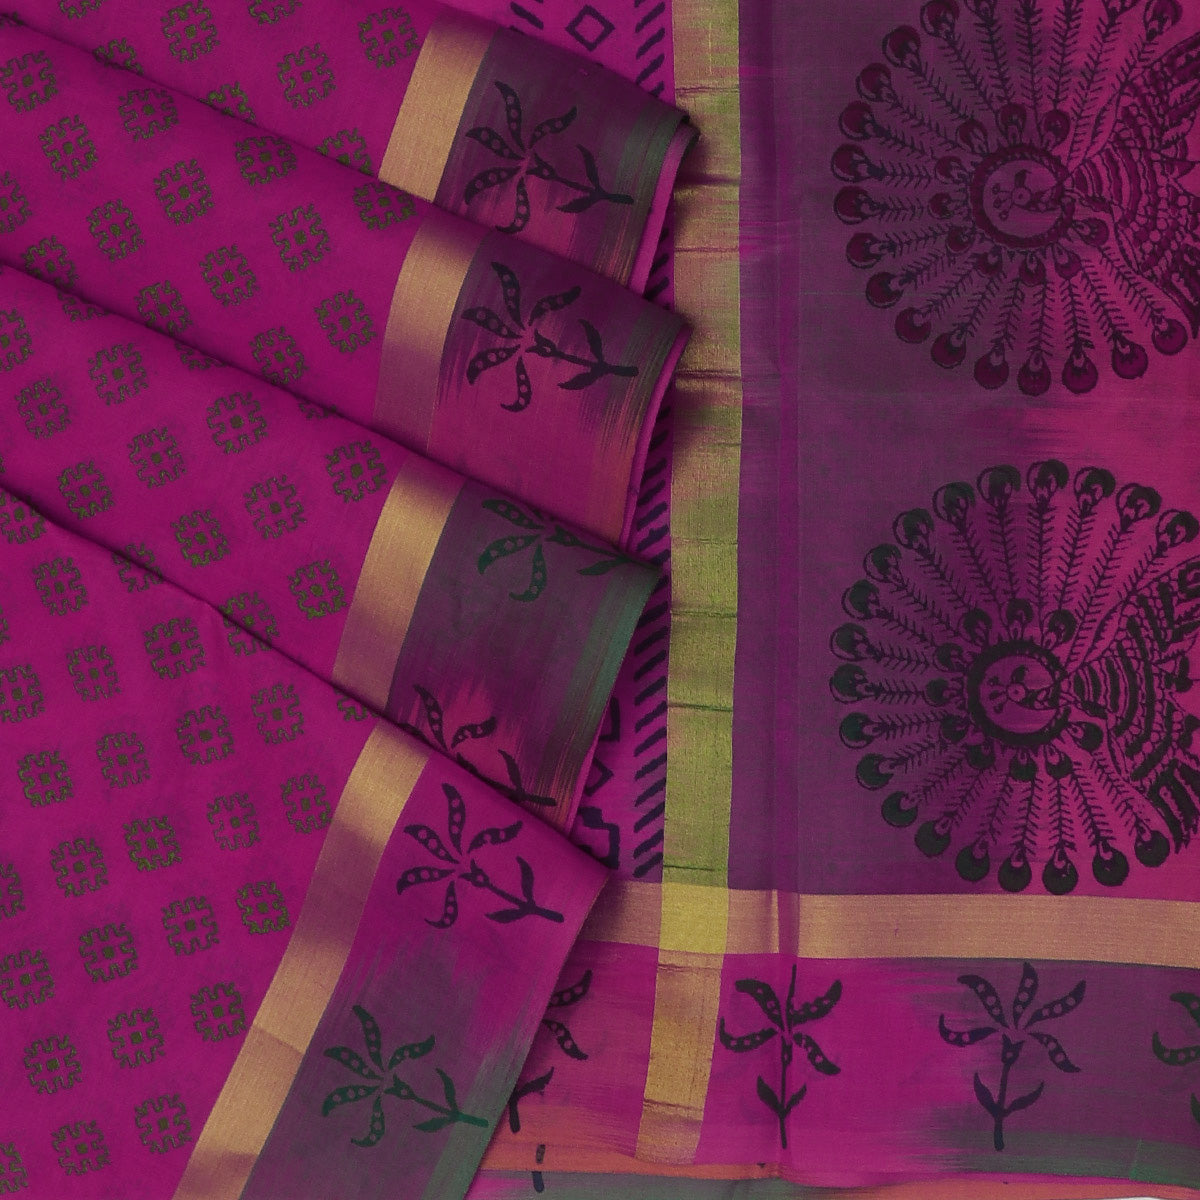 Printed Silk Cotton Saree Pink and Green with Leaf design for Rs.Rs. 3320.00 | Silk Cotton Sarees by Prashanti Sarees